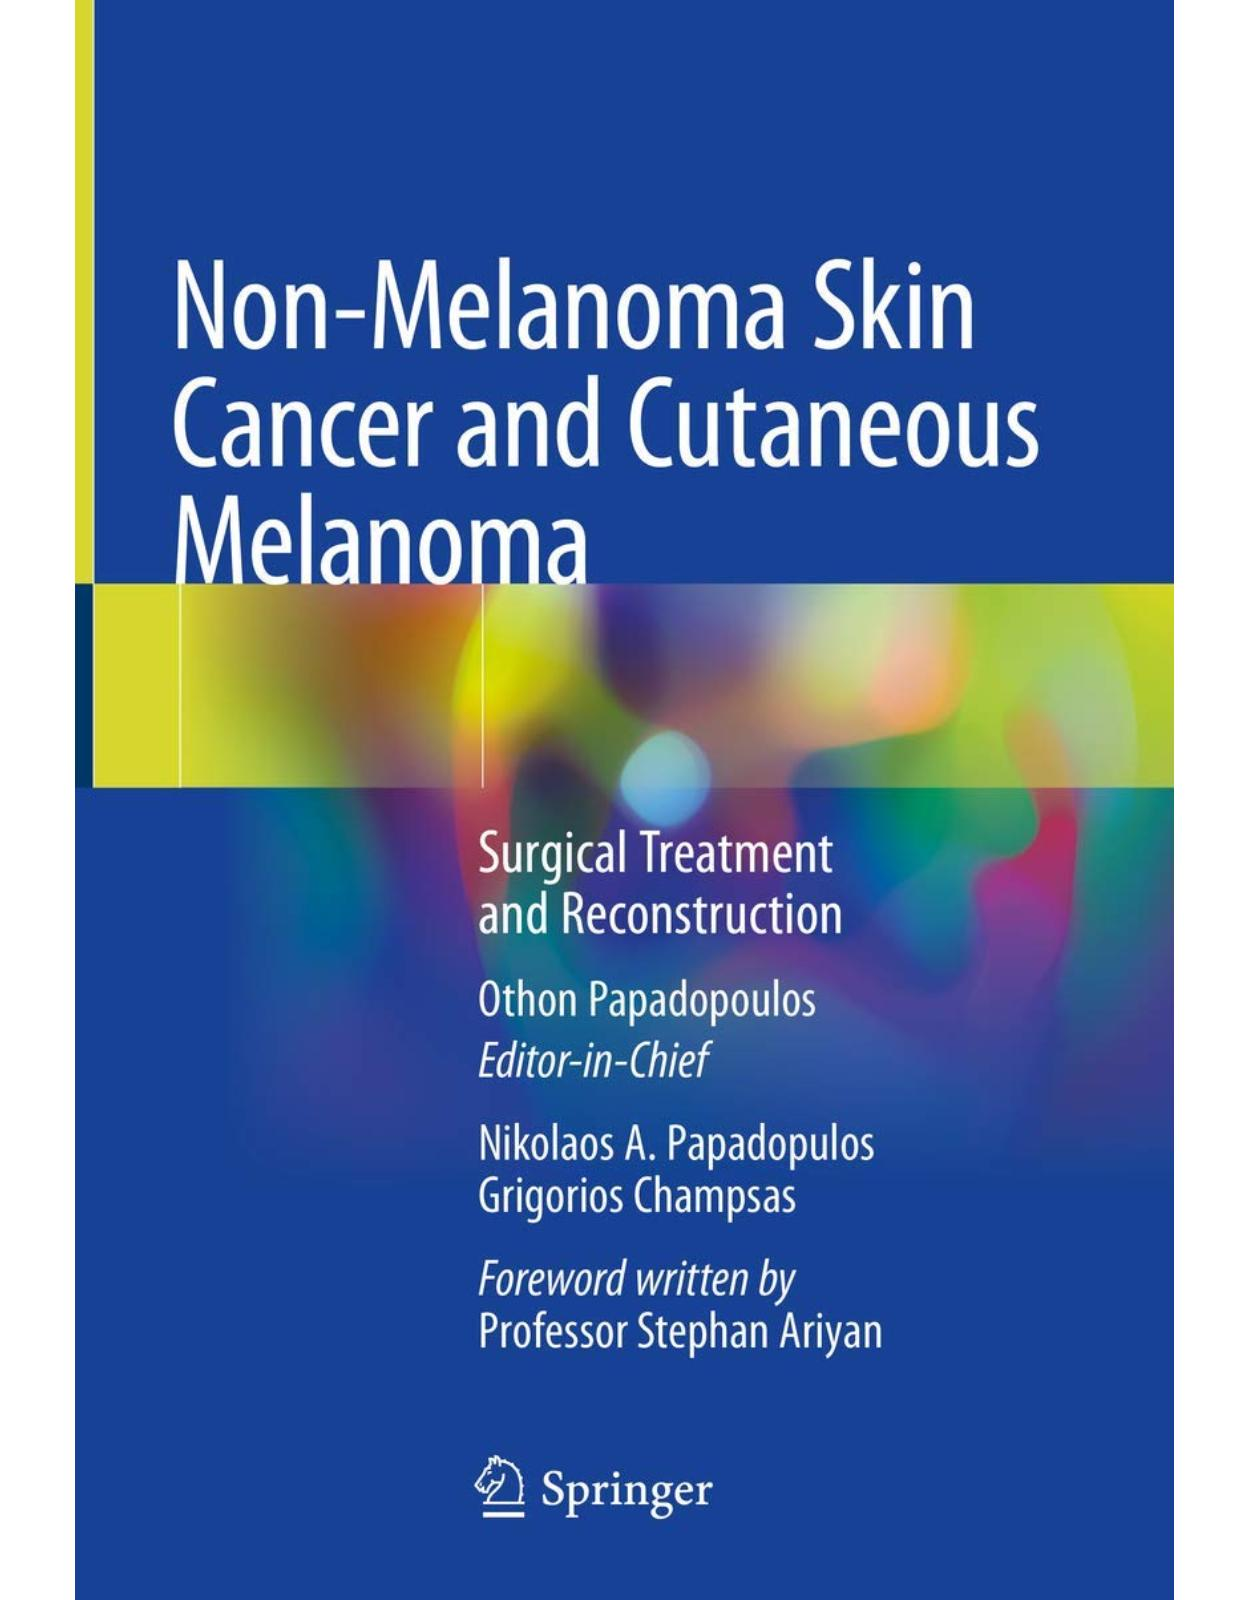 Non-Melanoma Skin Cancer and Cutaneous Melanoma. Surgical Treatment and Reconstruction